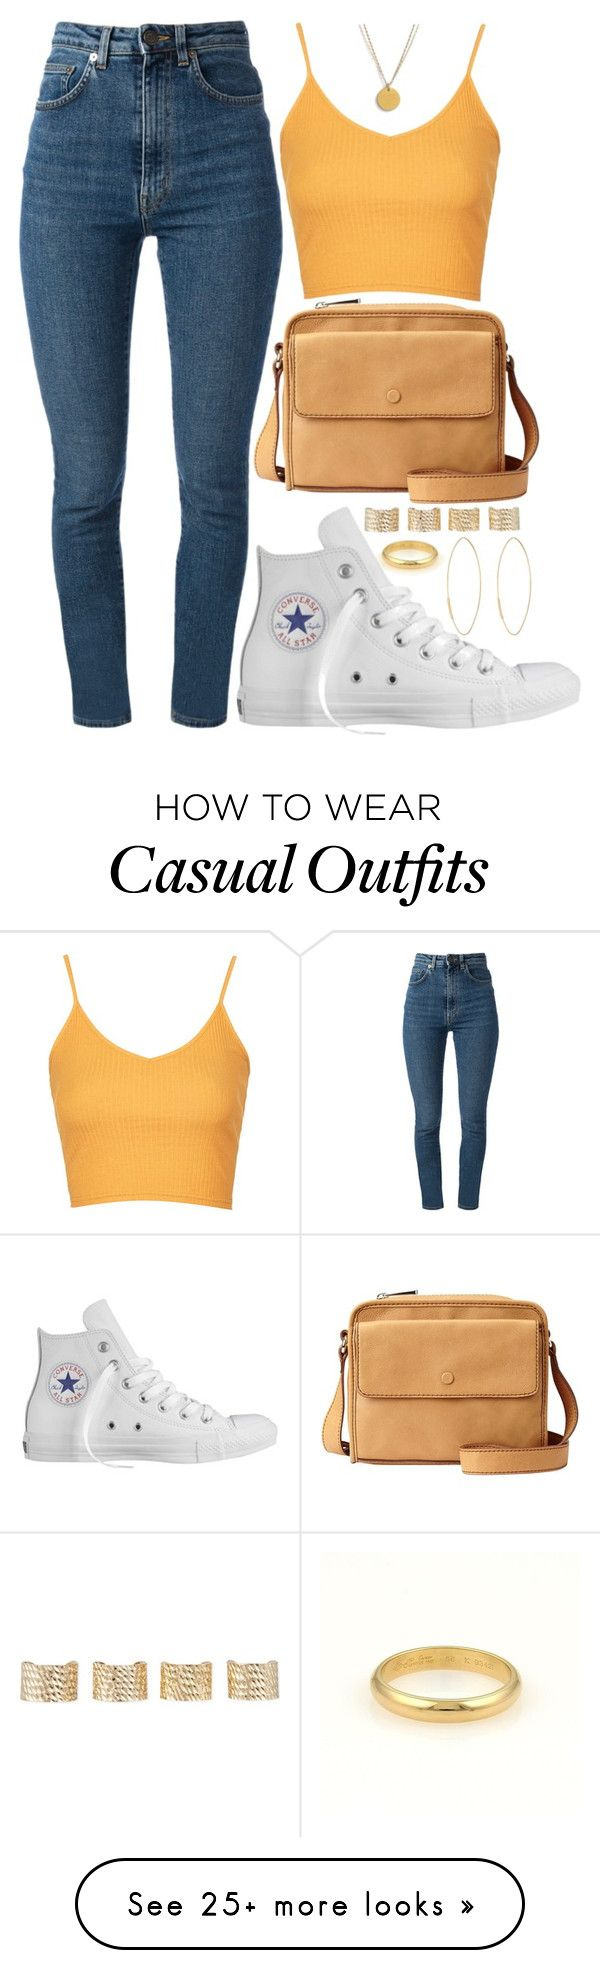 """""""Casual Day"""" by rayray669 on Polyvore featuring Cartier, Topshop, Converse, Yves Saint Laurent, FOSSIL, Maison Margiela, Lana and Dogeared"""